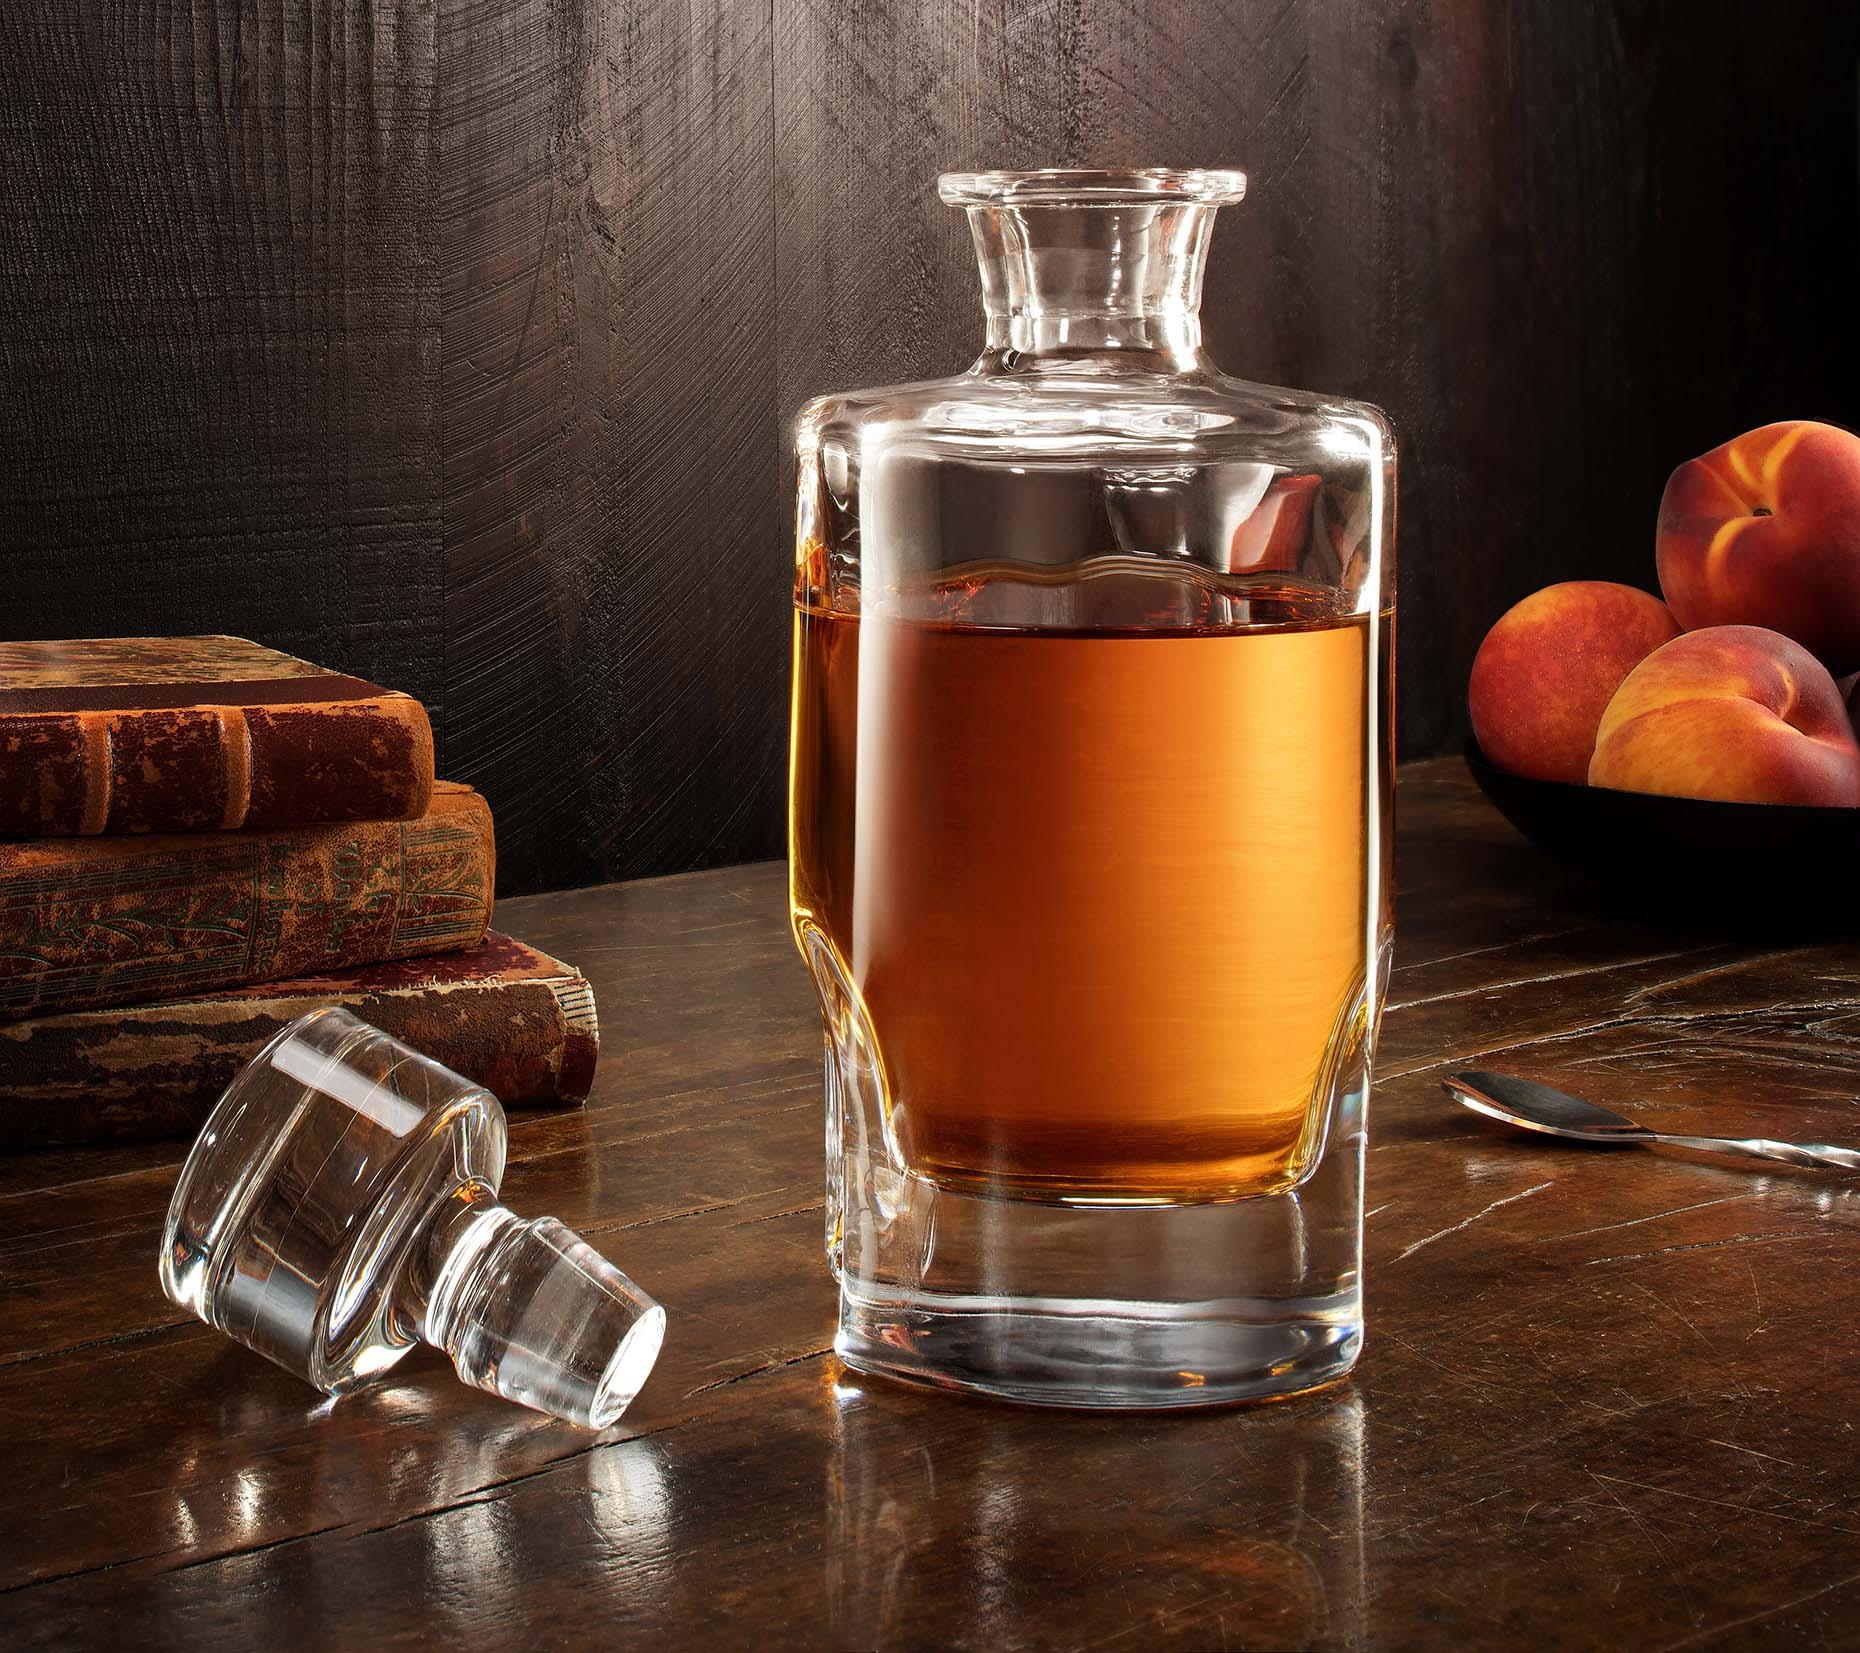 New-york-liquid-photography-beverage-photographer-whiskey-decandor-vintage